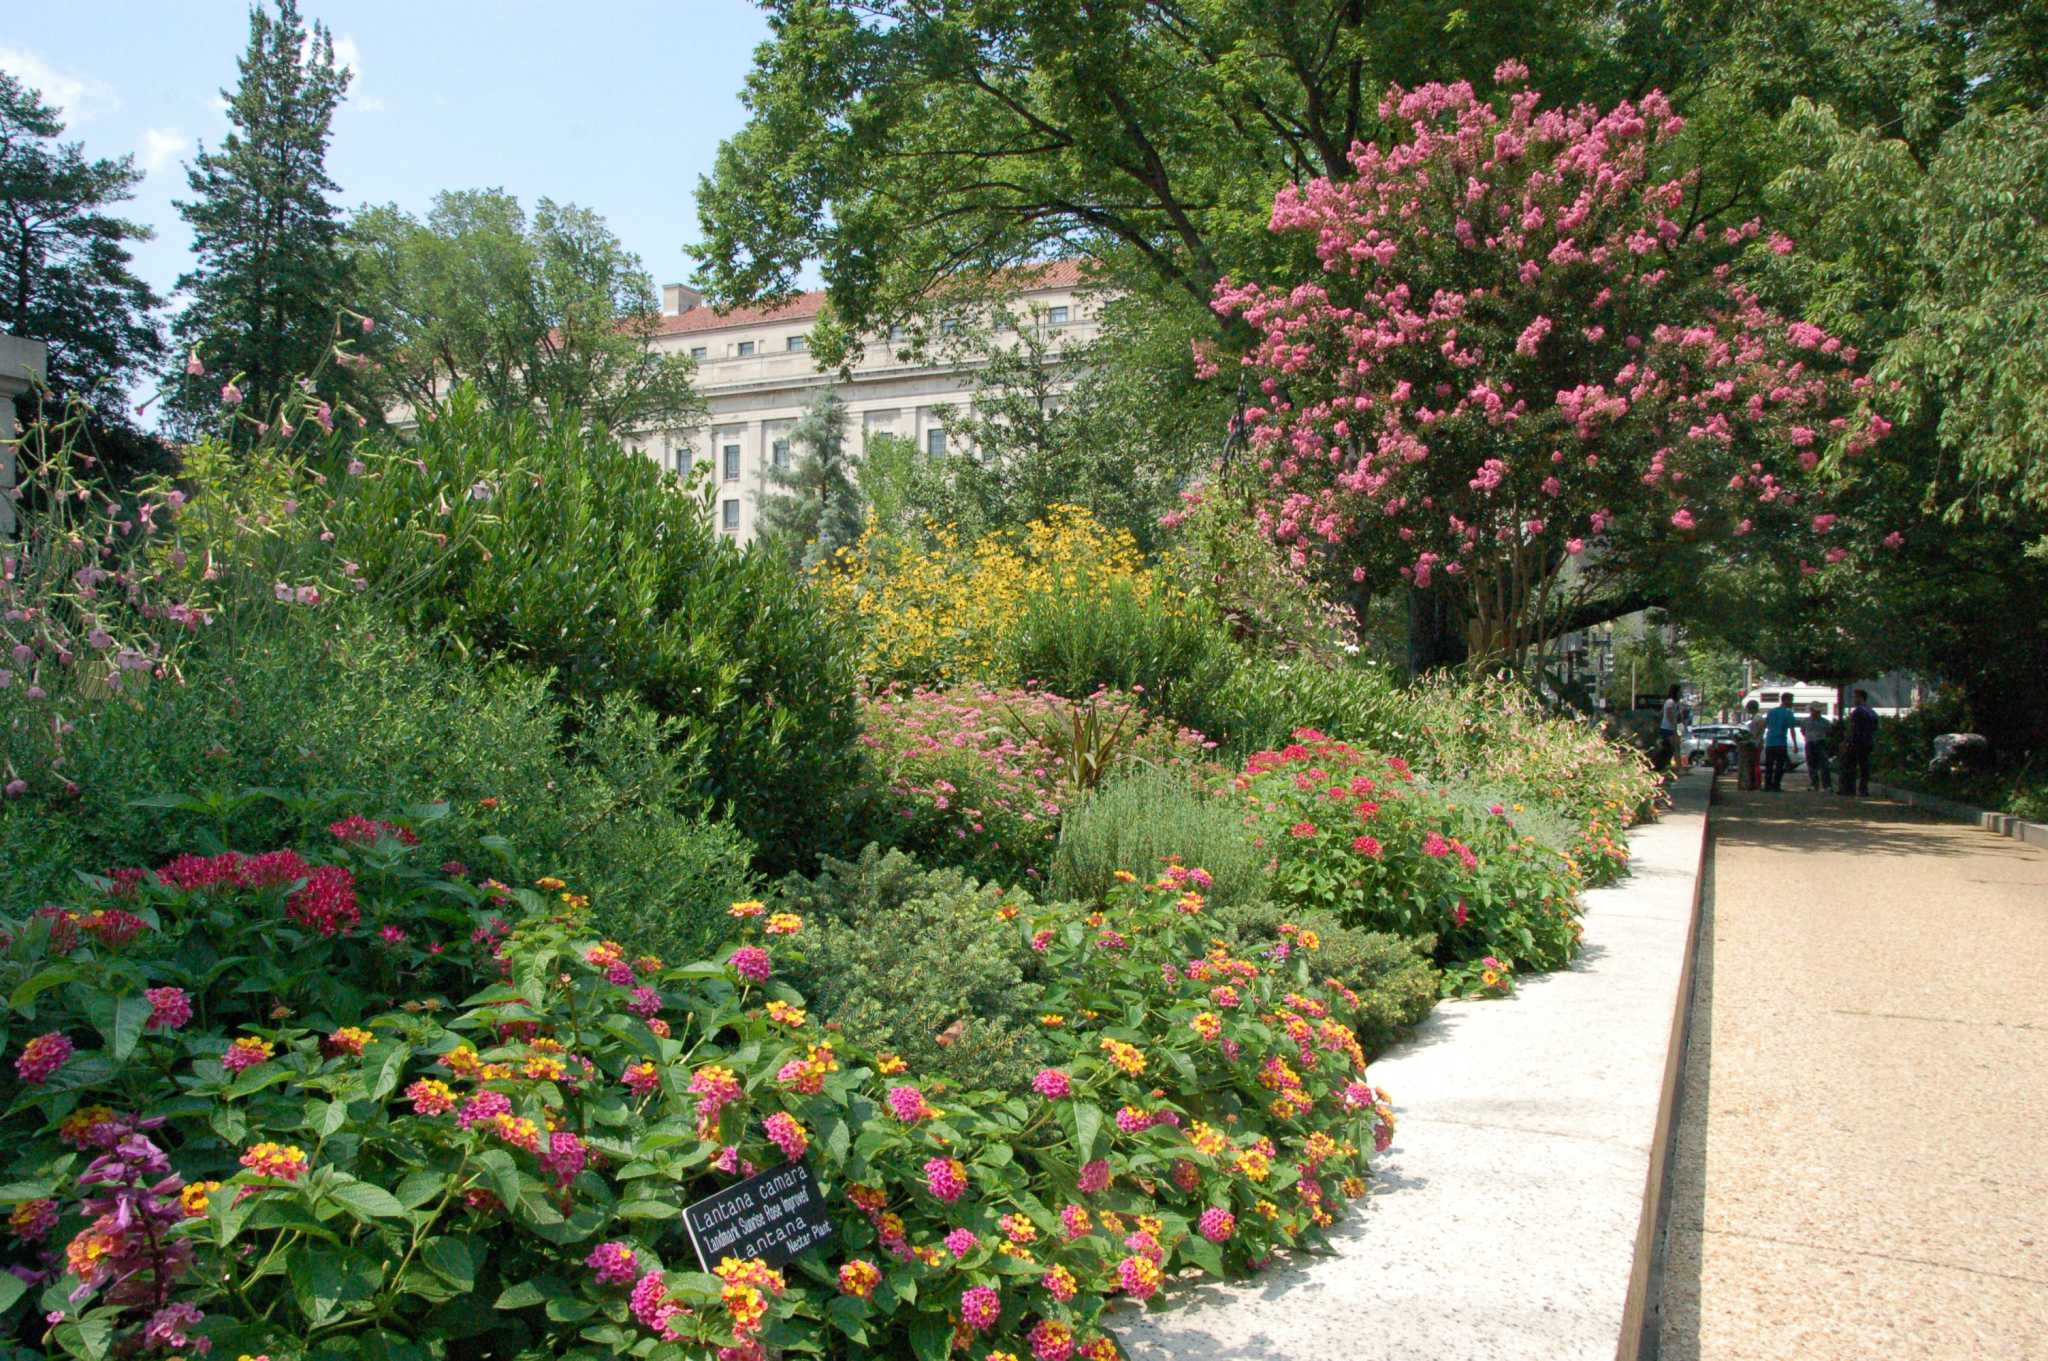 Help butterflies, bees and birds with a pollinator garden in your yard